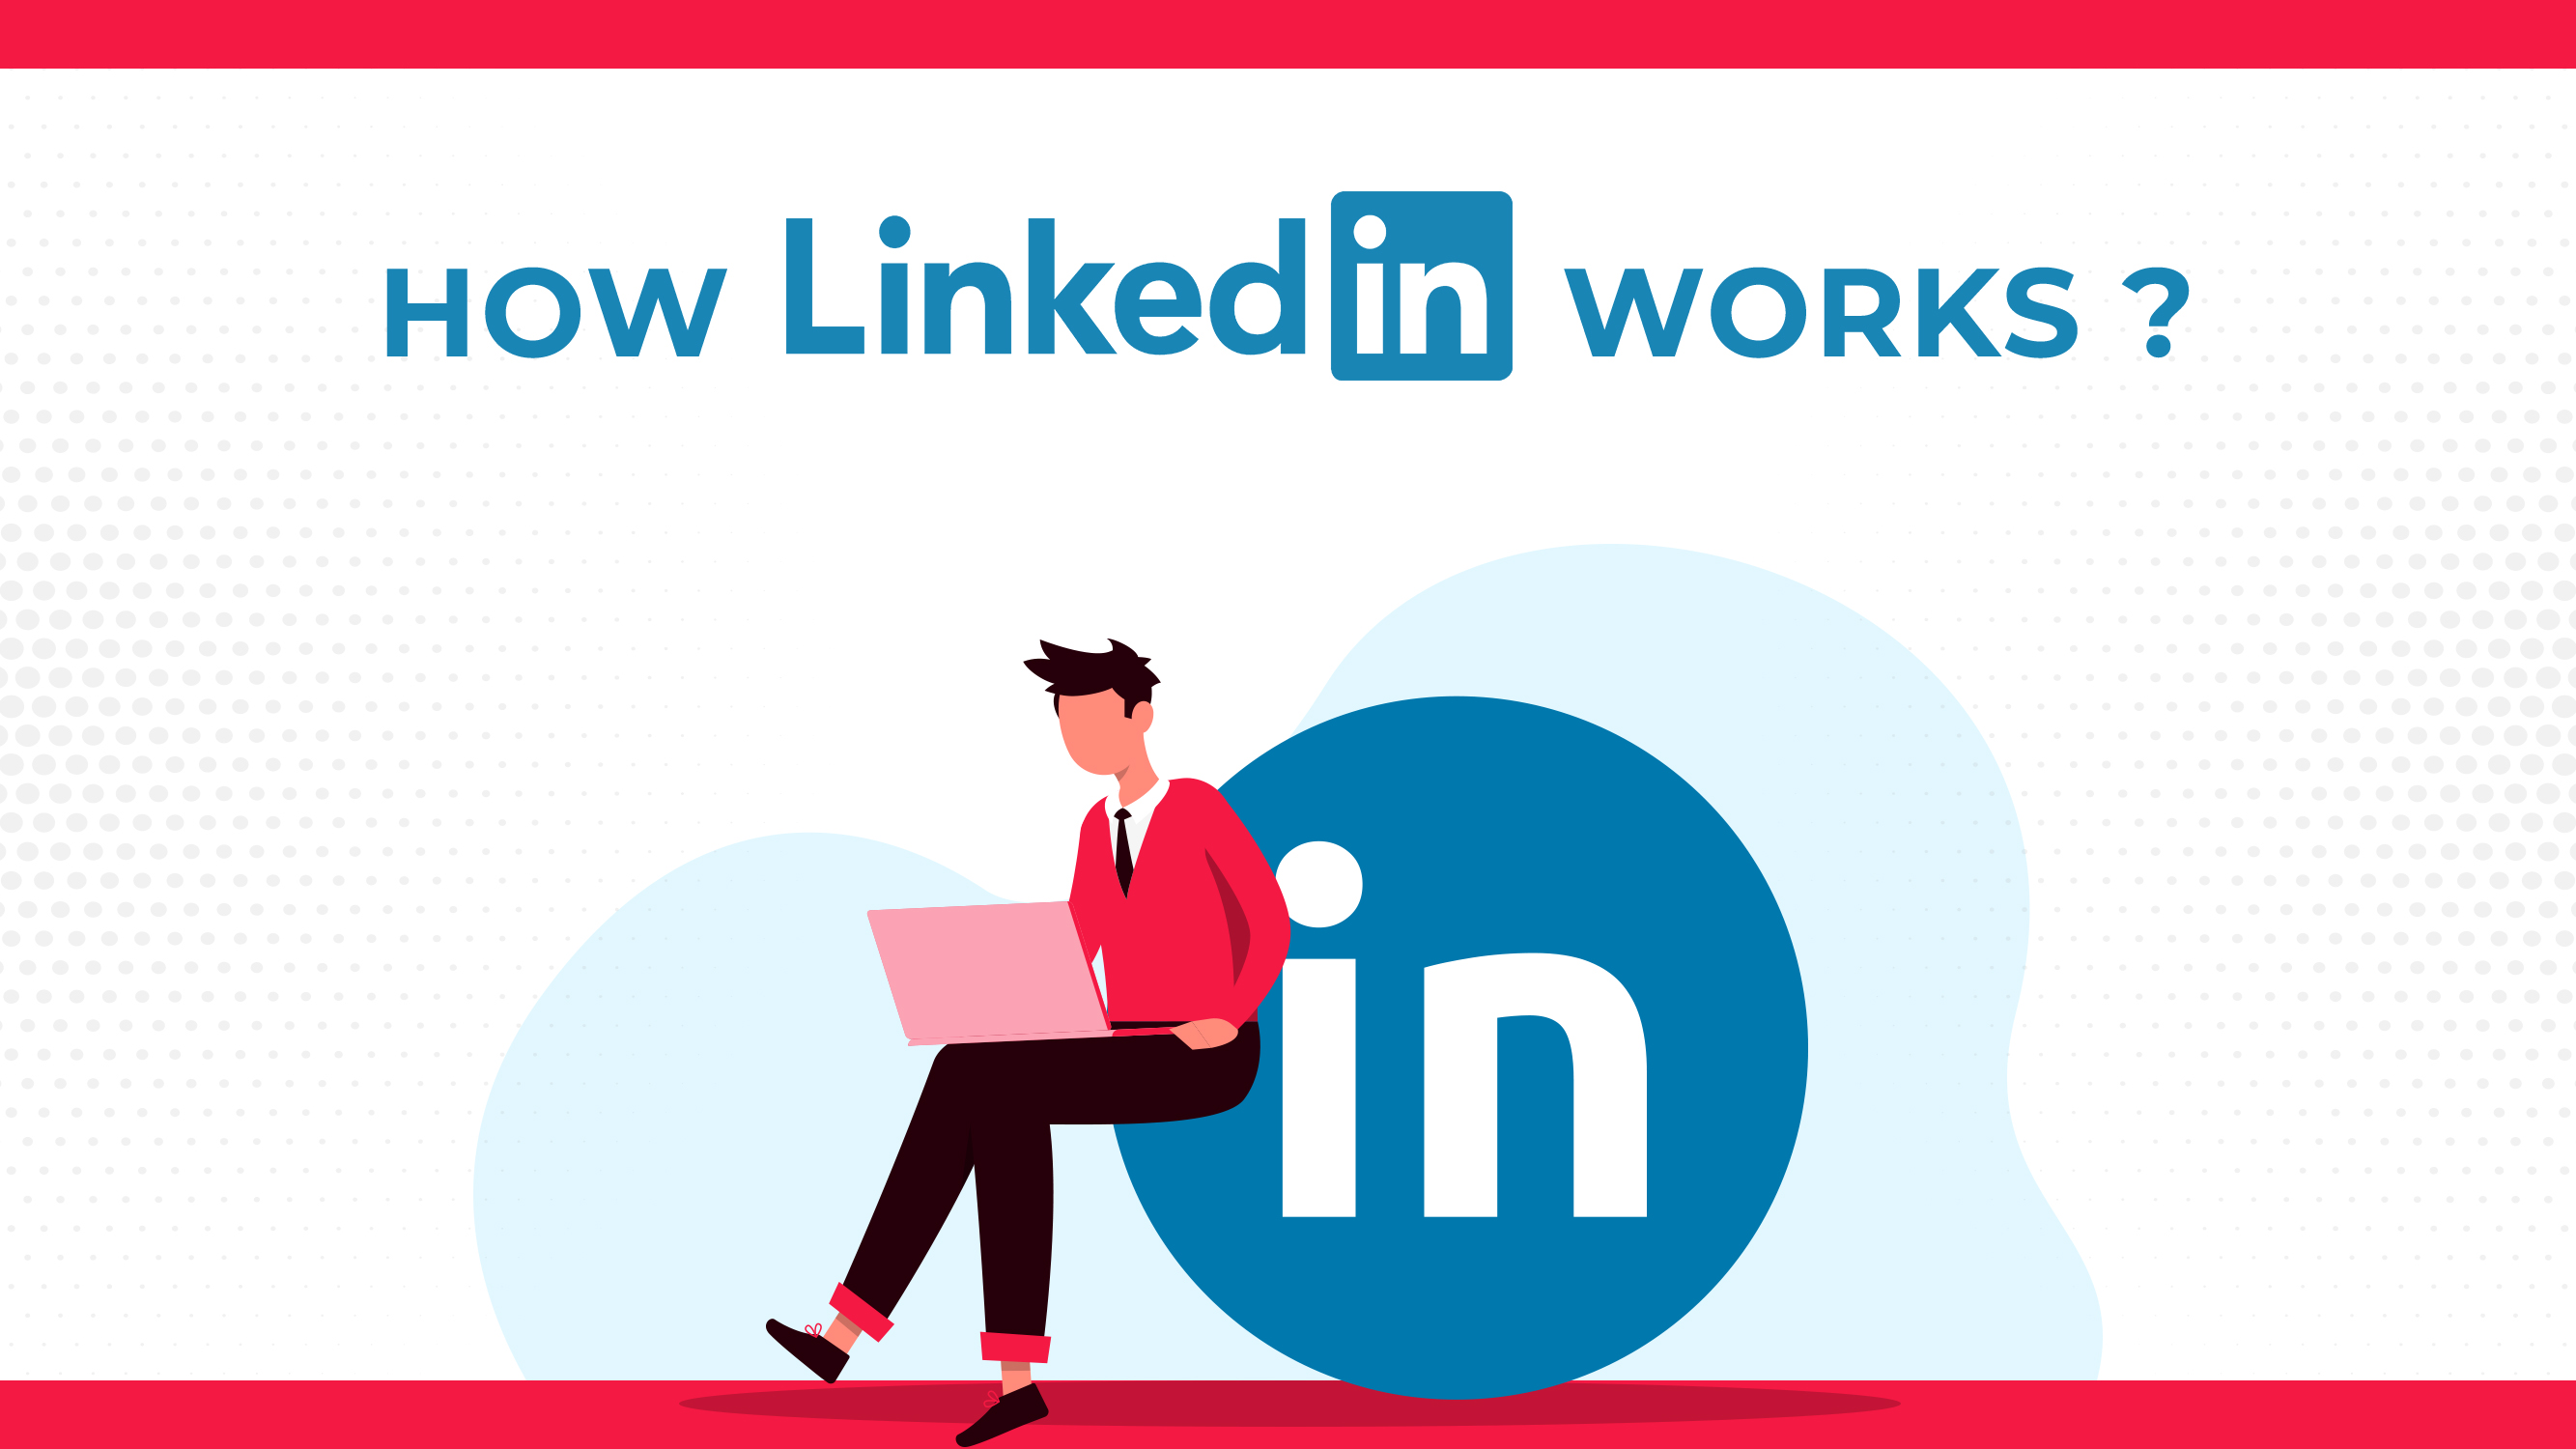 Comment fonctionne LinkedIn